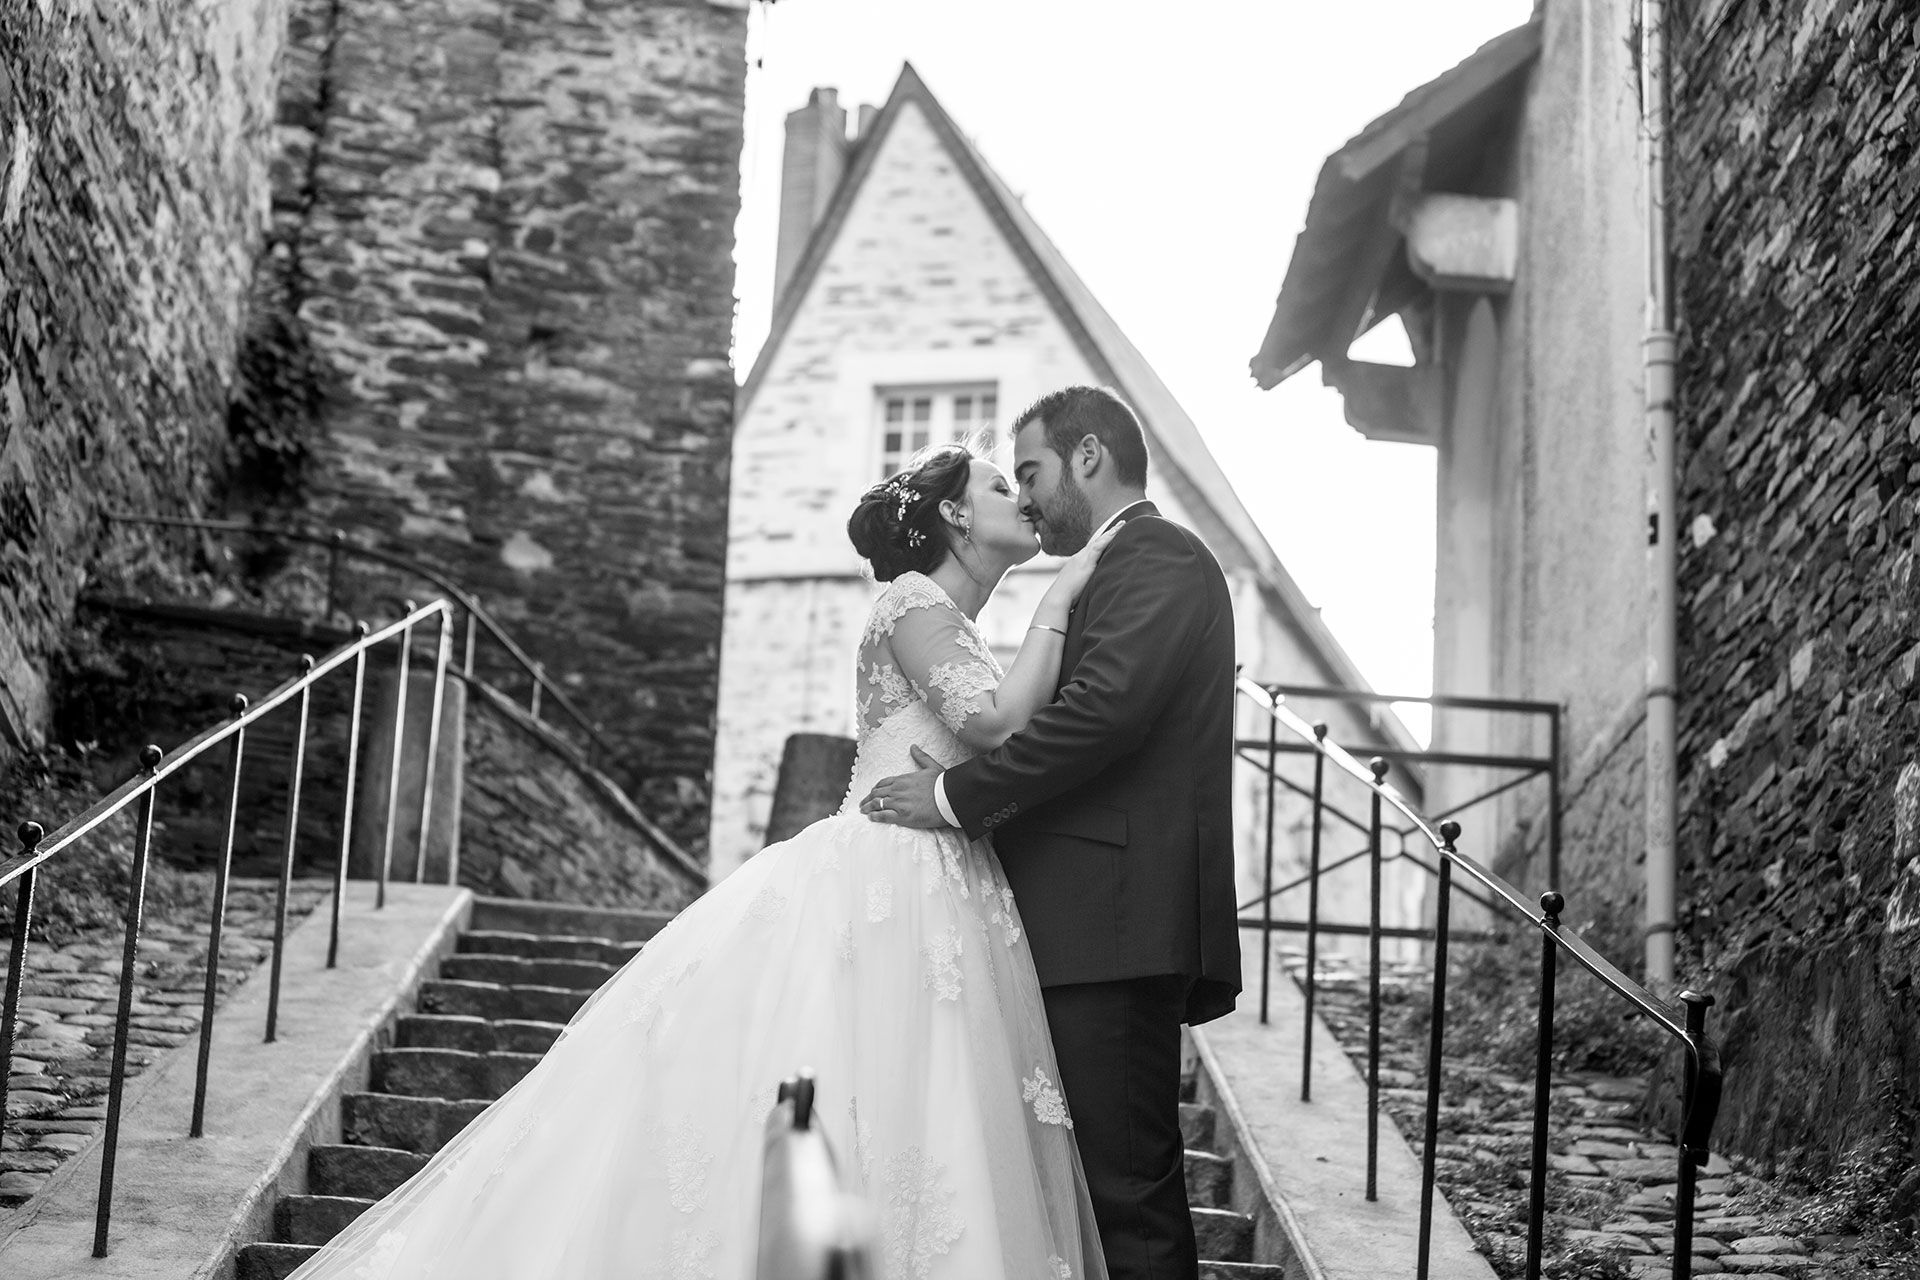 particuliers-evenements-mariage-oui-tiphaine&rudy-68